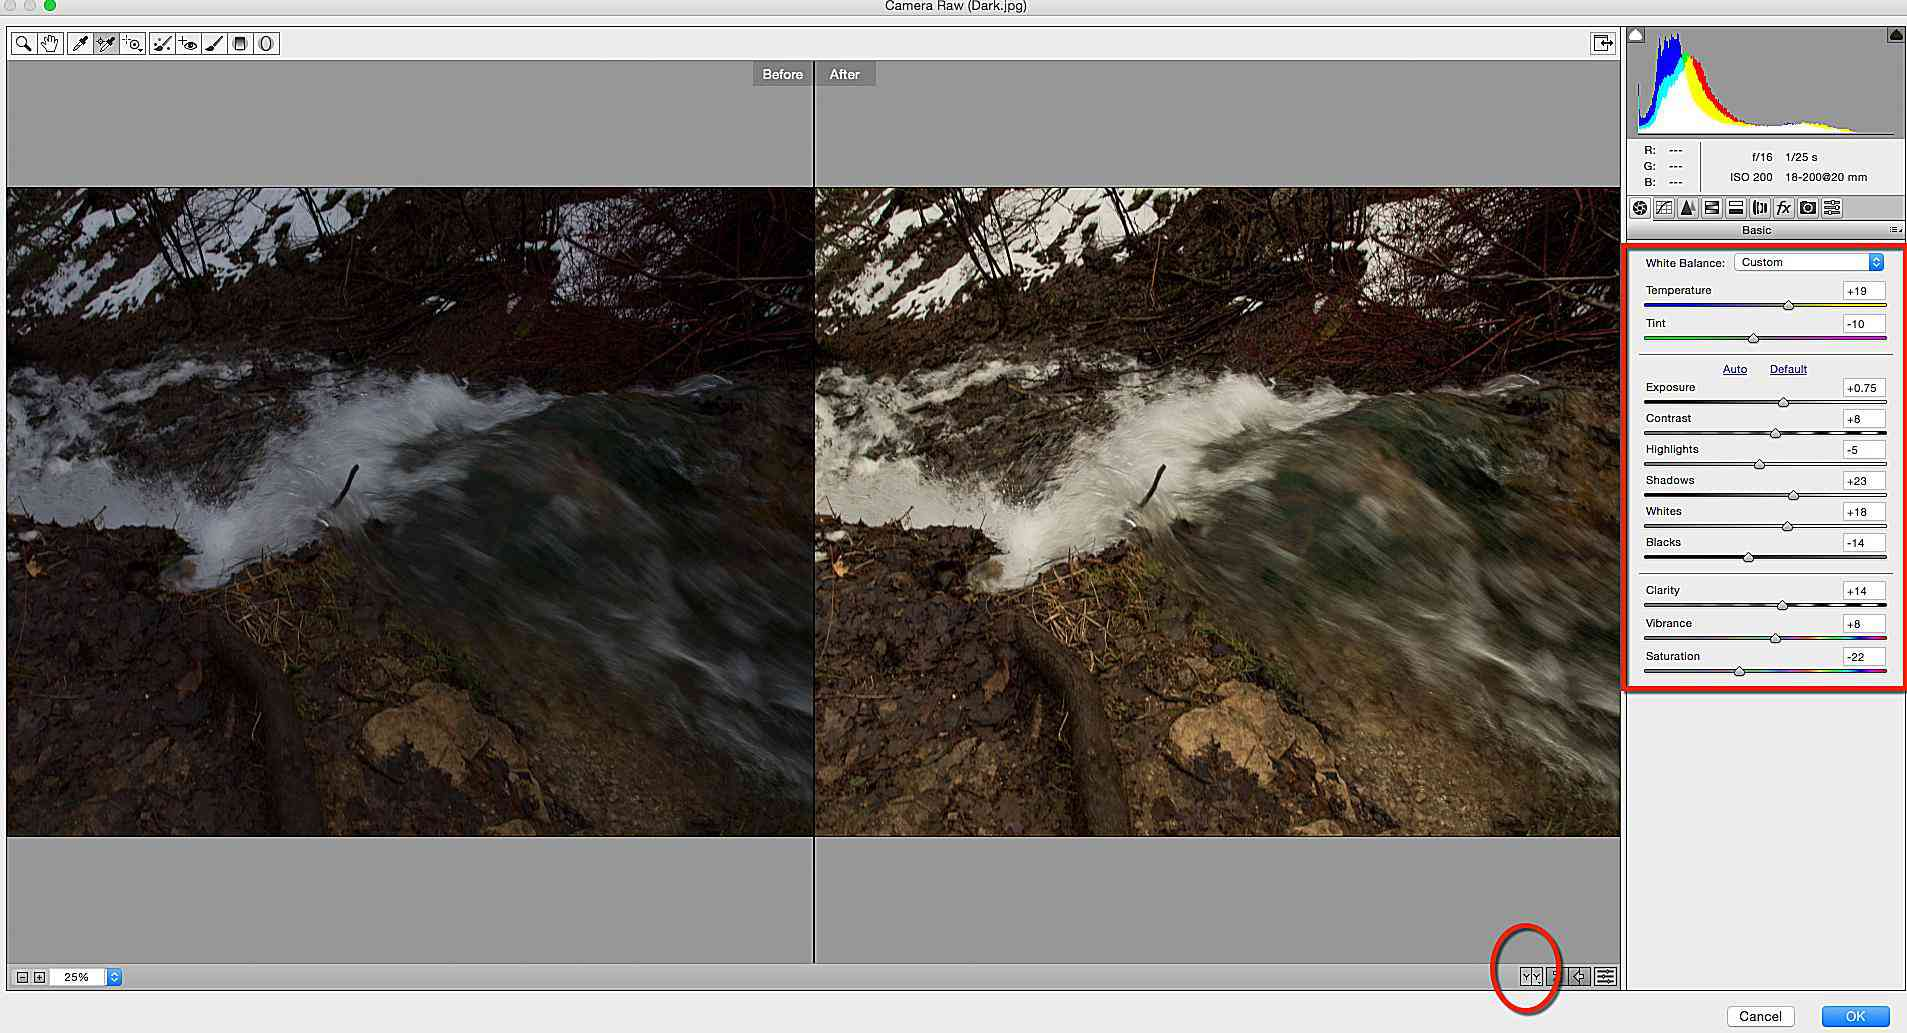 how to use camera raw in photoshop